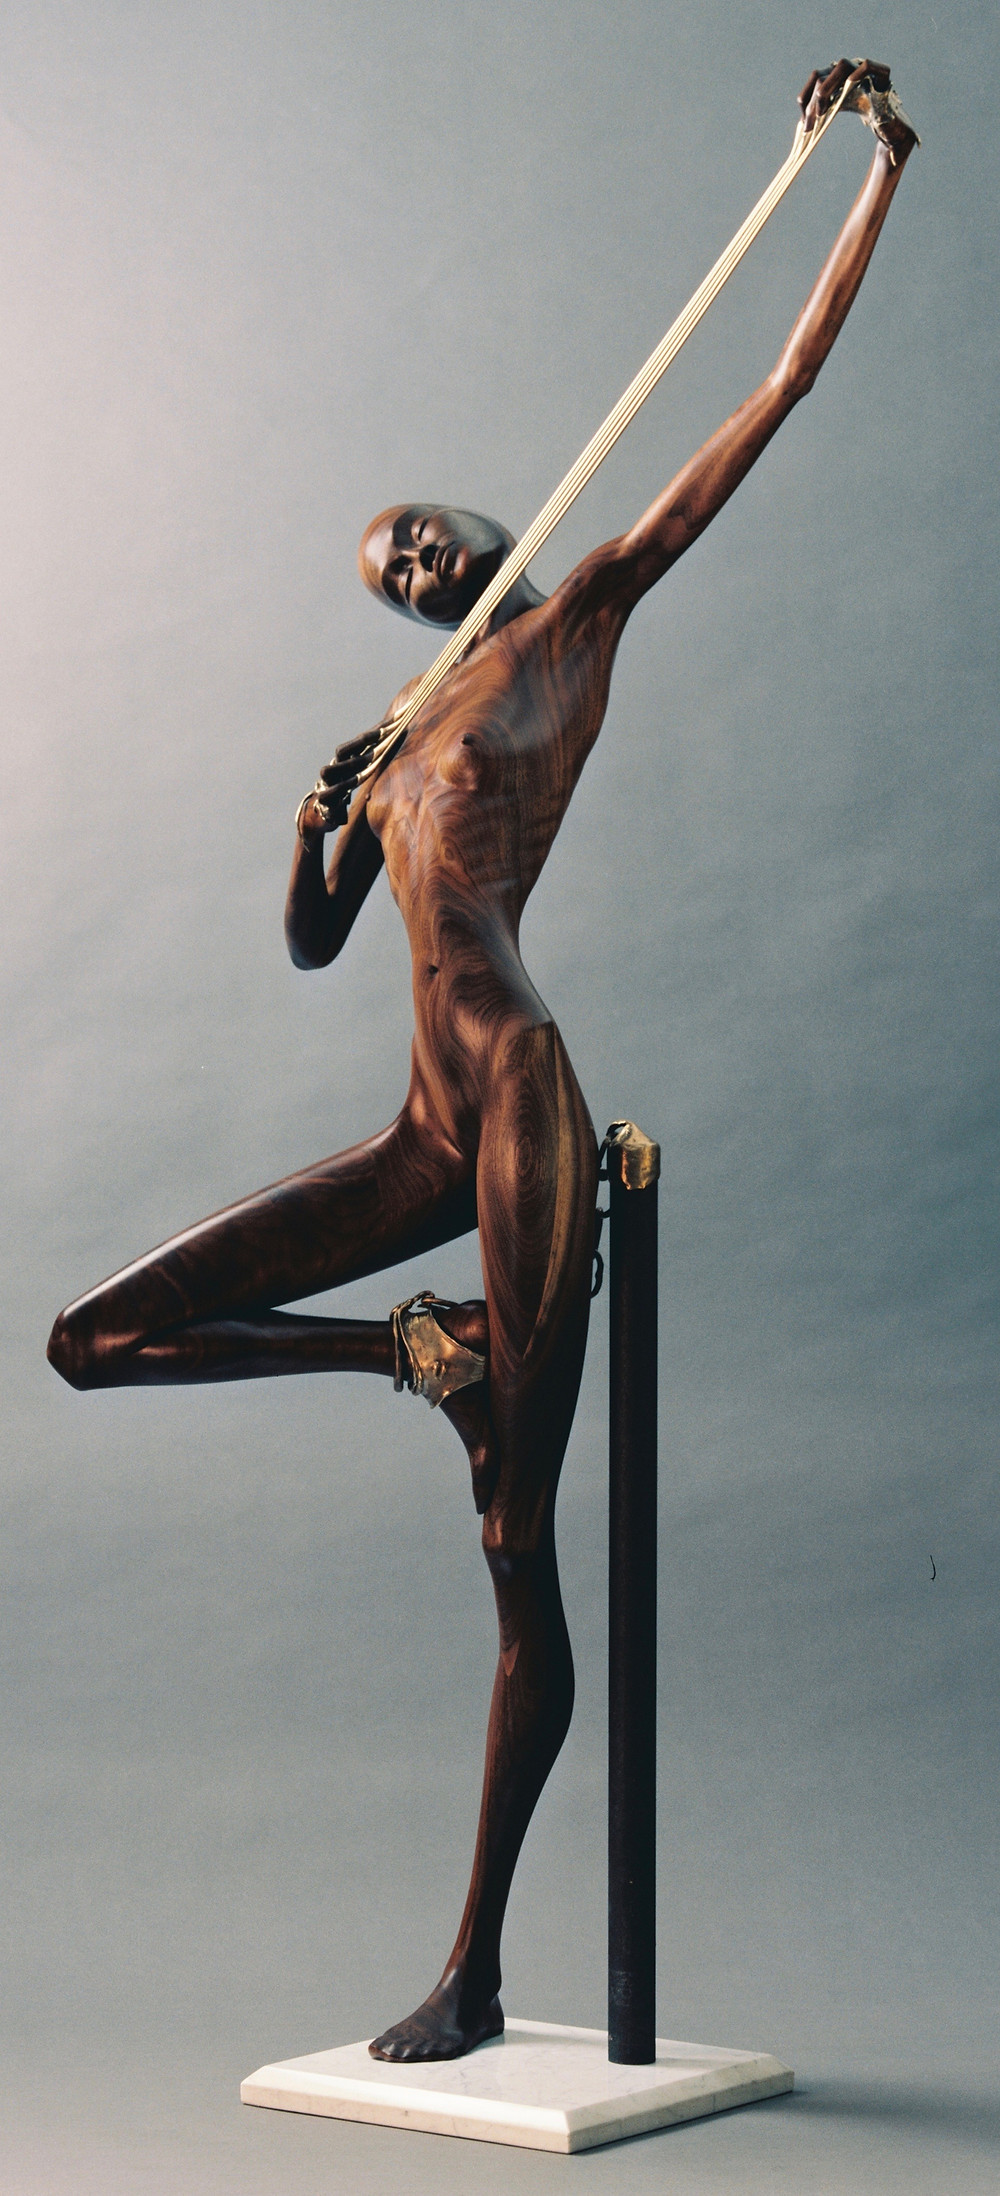 Life-size, walnut, female figure stretching bronze between her fingers, standing with one foot on opposite knee.